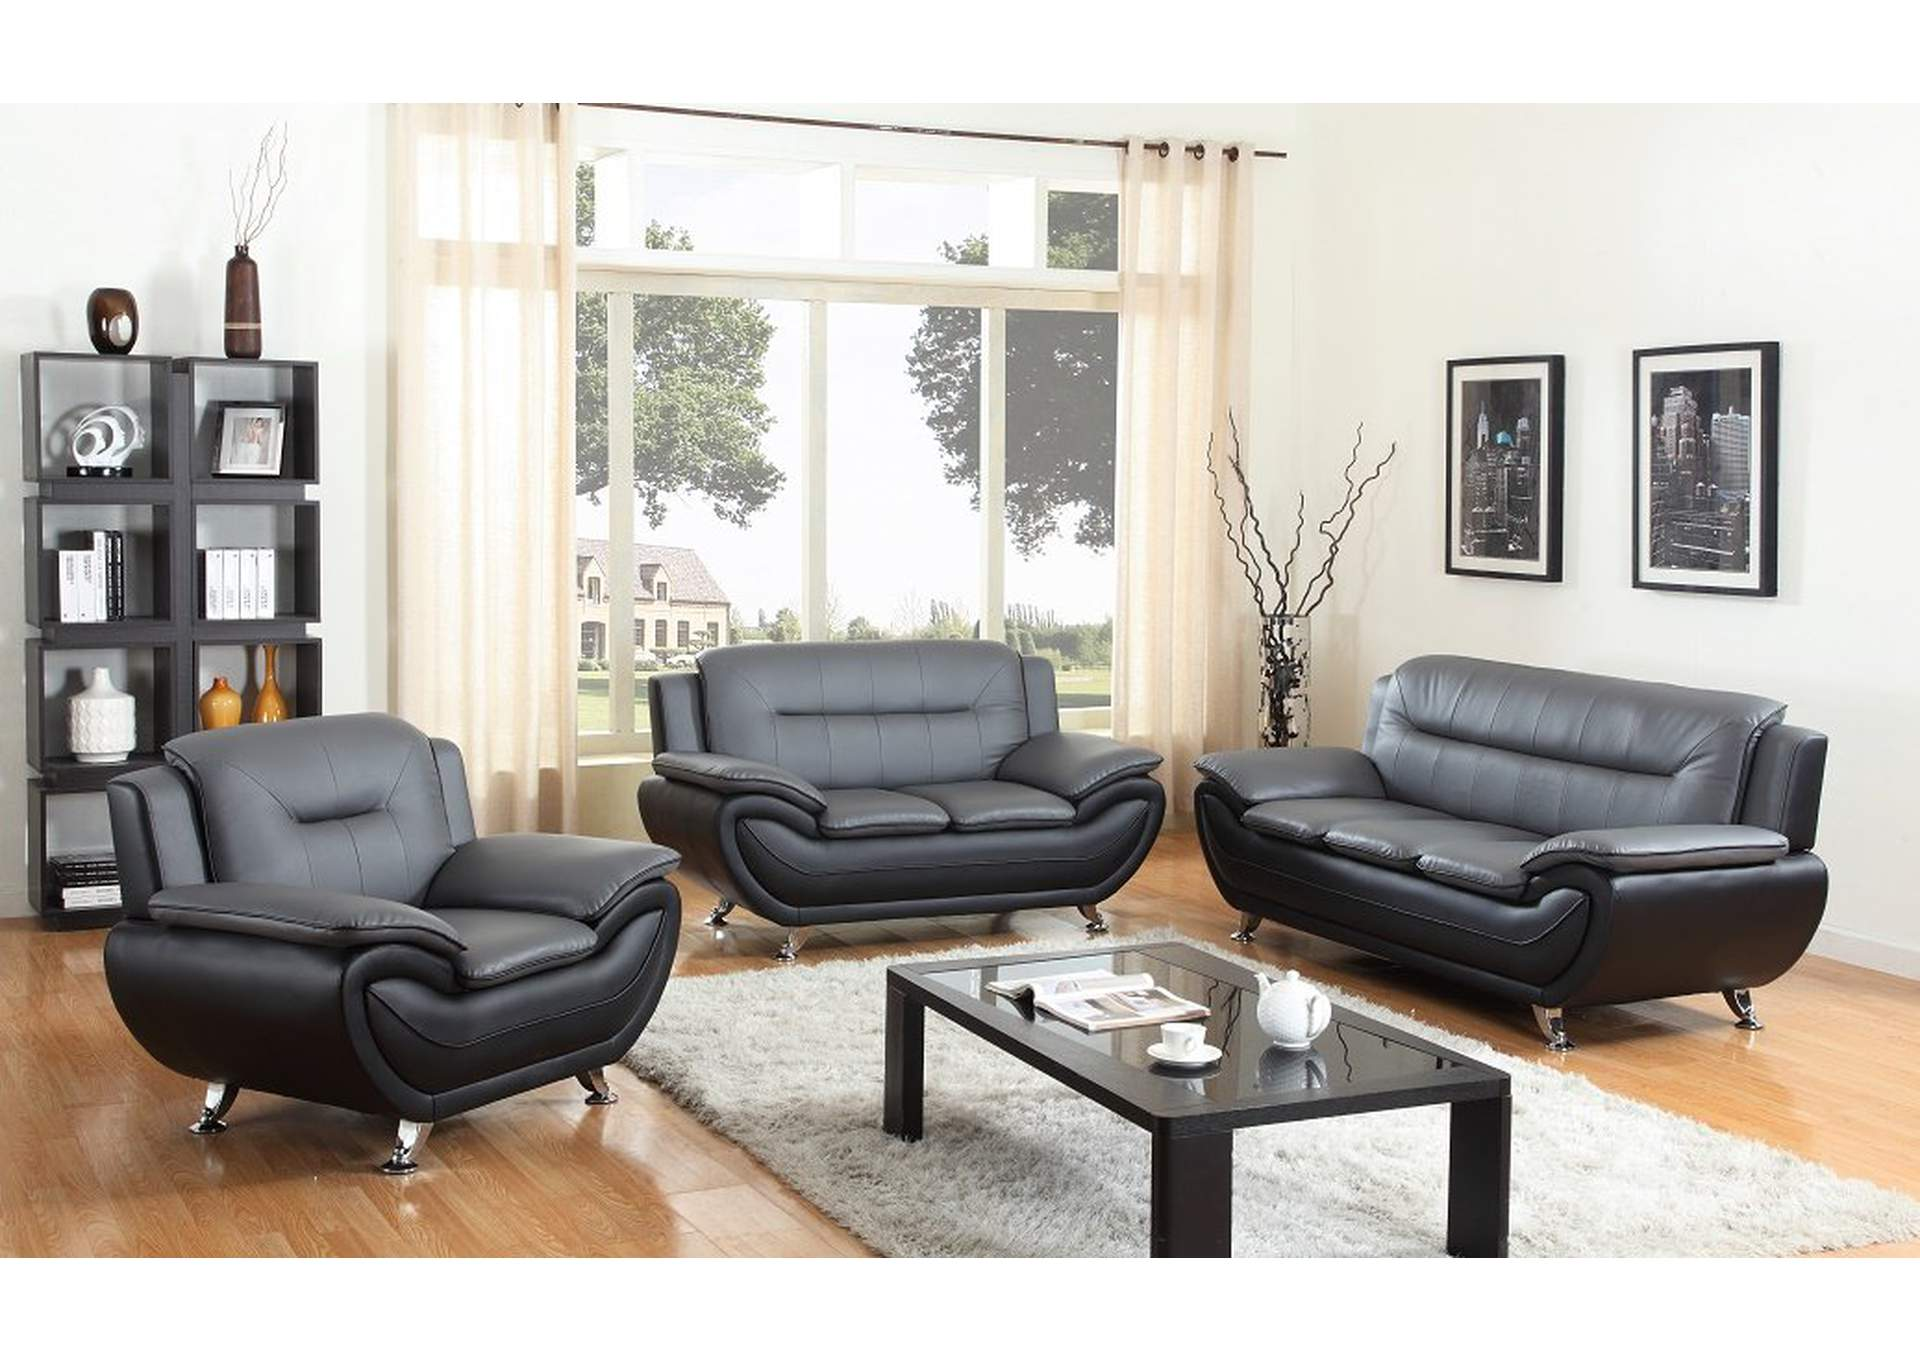 Just Furniture Grey/Black Leather Sofa & Loveseat w/Chrome Legs